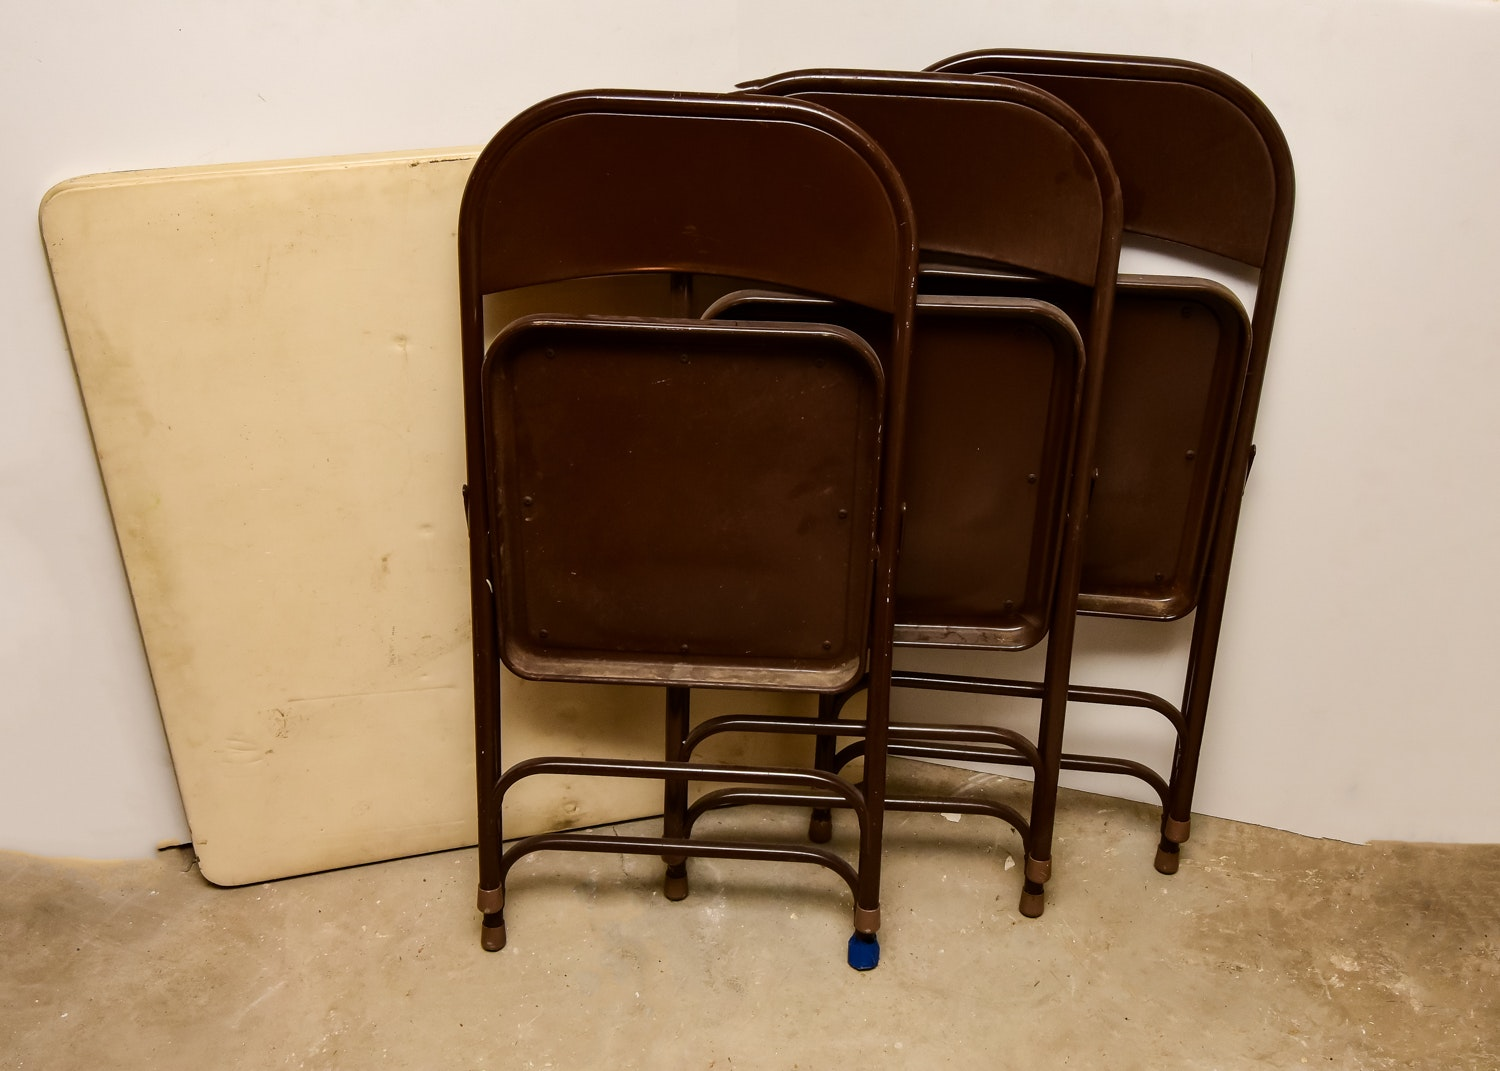 Folding Card Table and Chairs EBTH